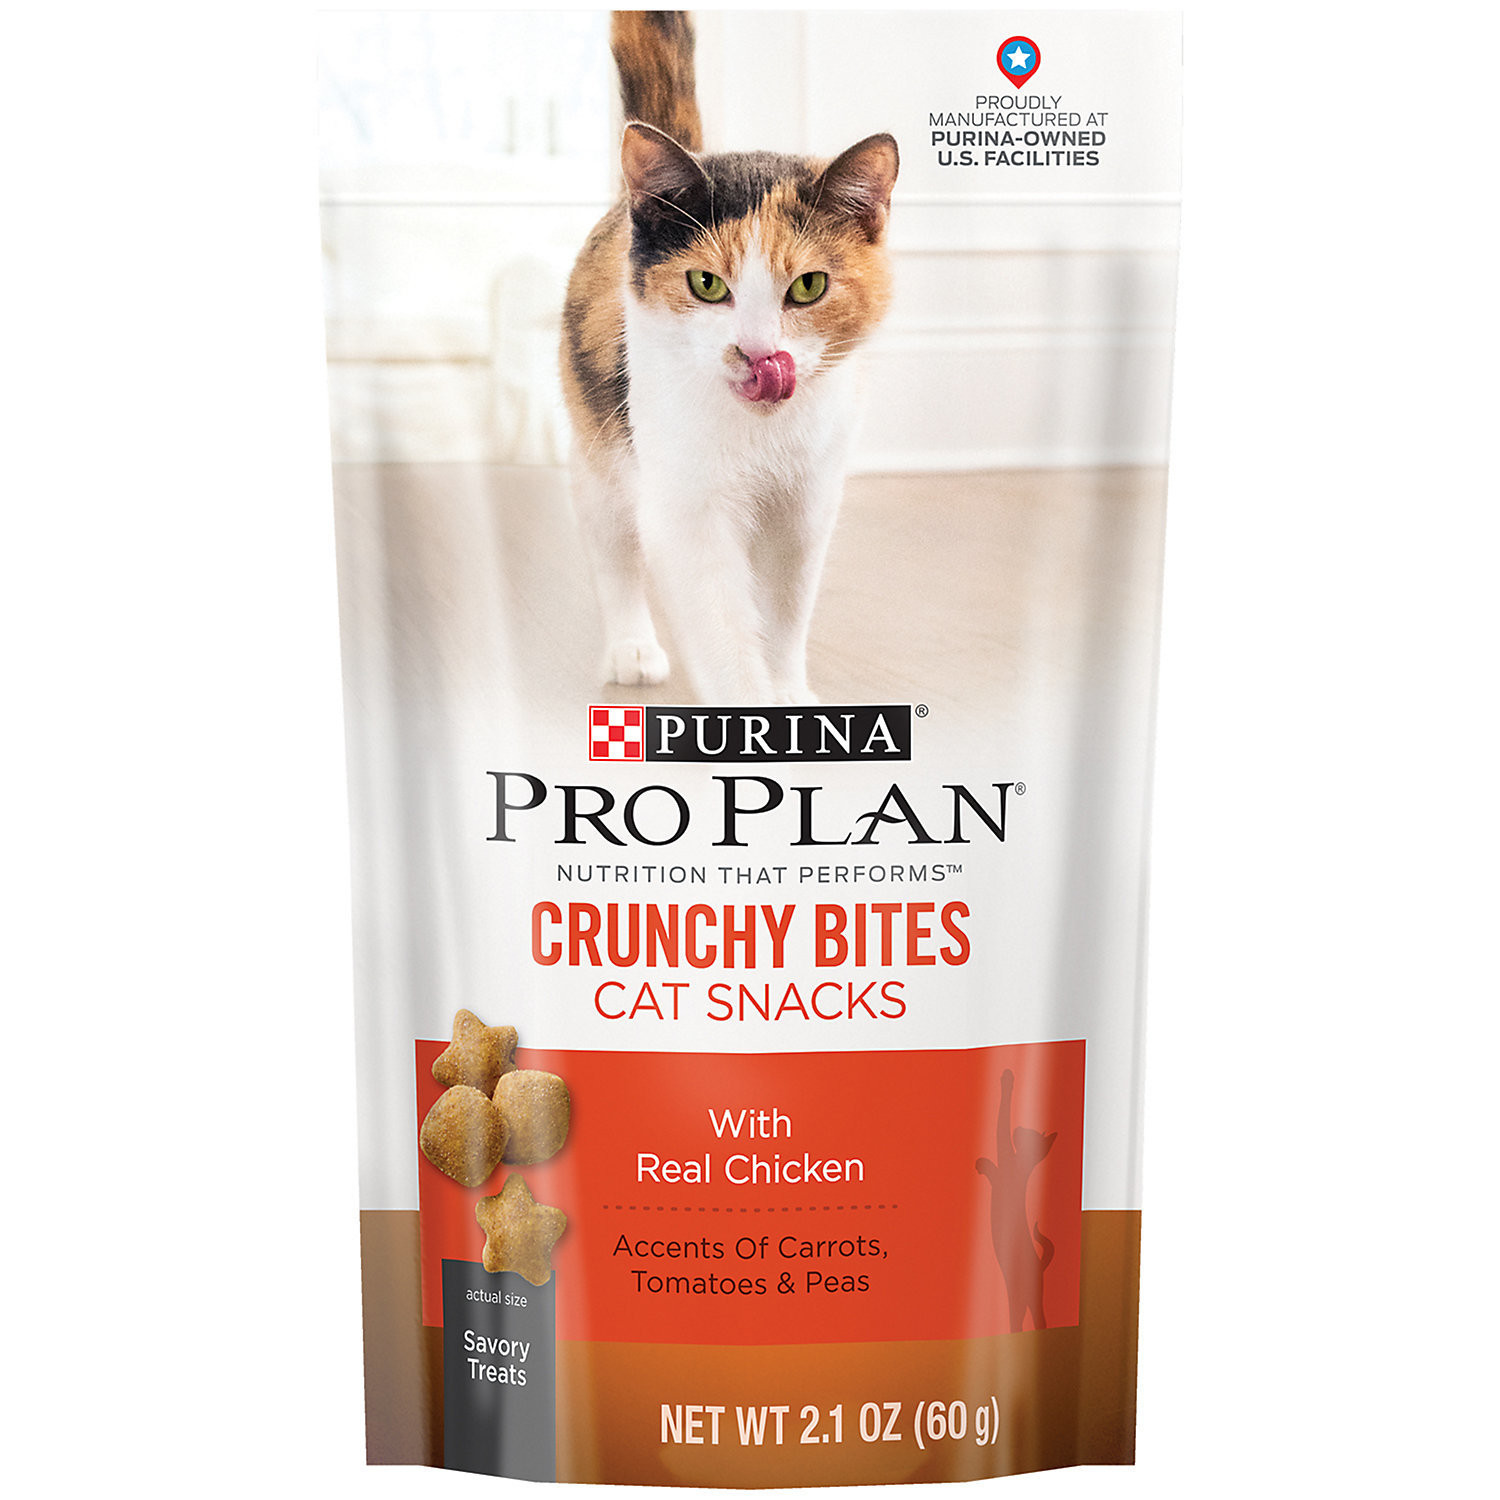 Purina Pro Plan Crunchy Bites with Real Chicken Cat Snacks (2.1 oz)  (7/19) (T.F3)